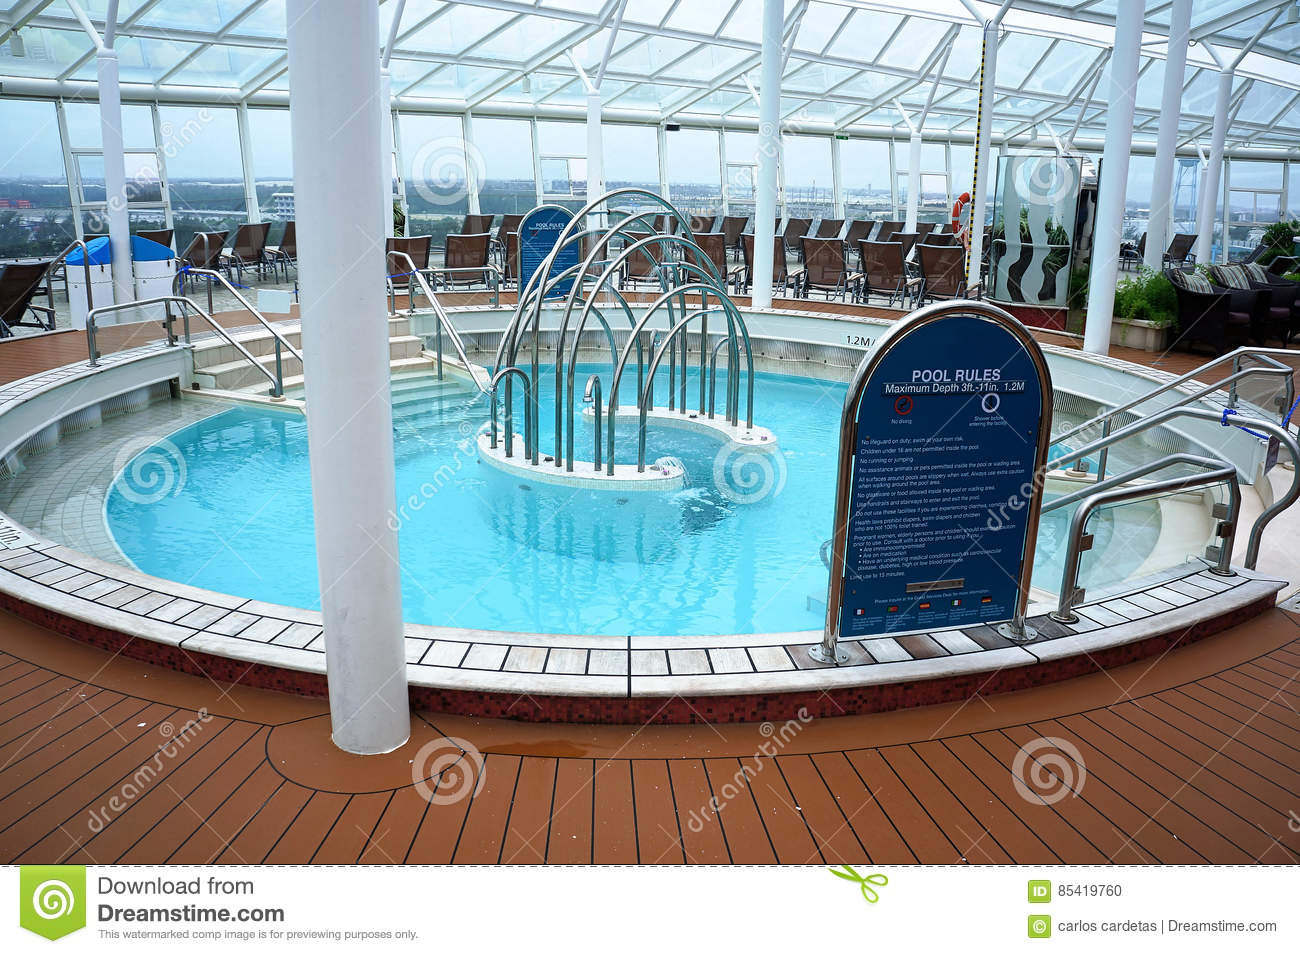 Pics photos swimming pool rules depths sign - Oval Pool Safety Rules Empty Holiday Stock Photo